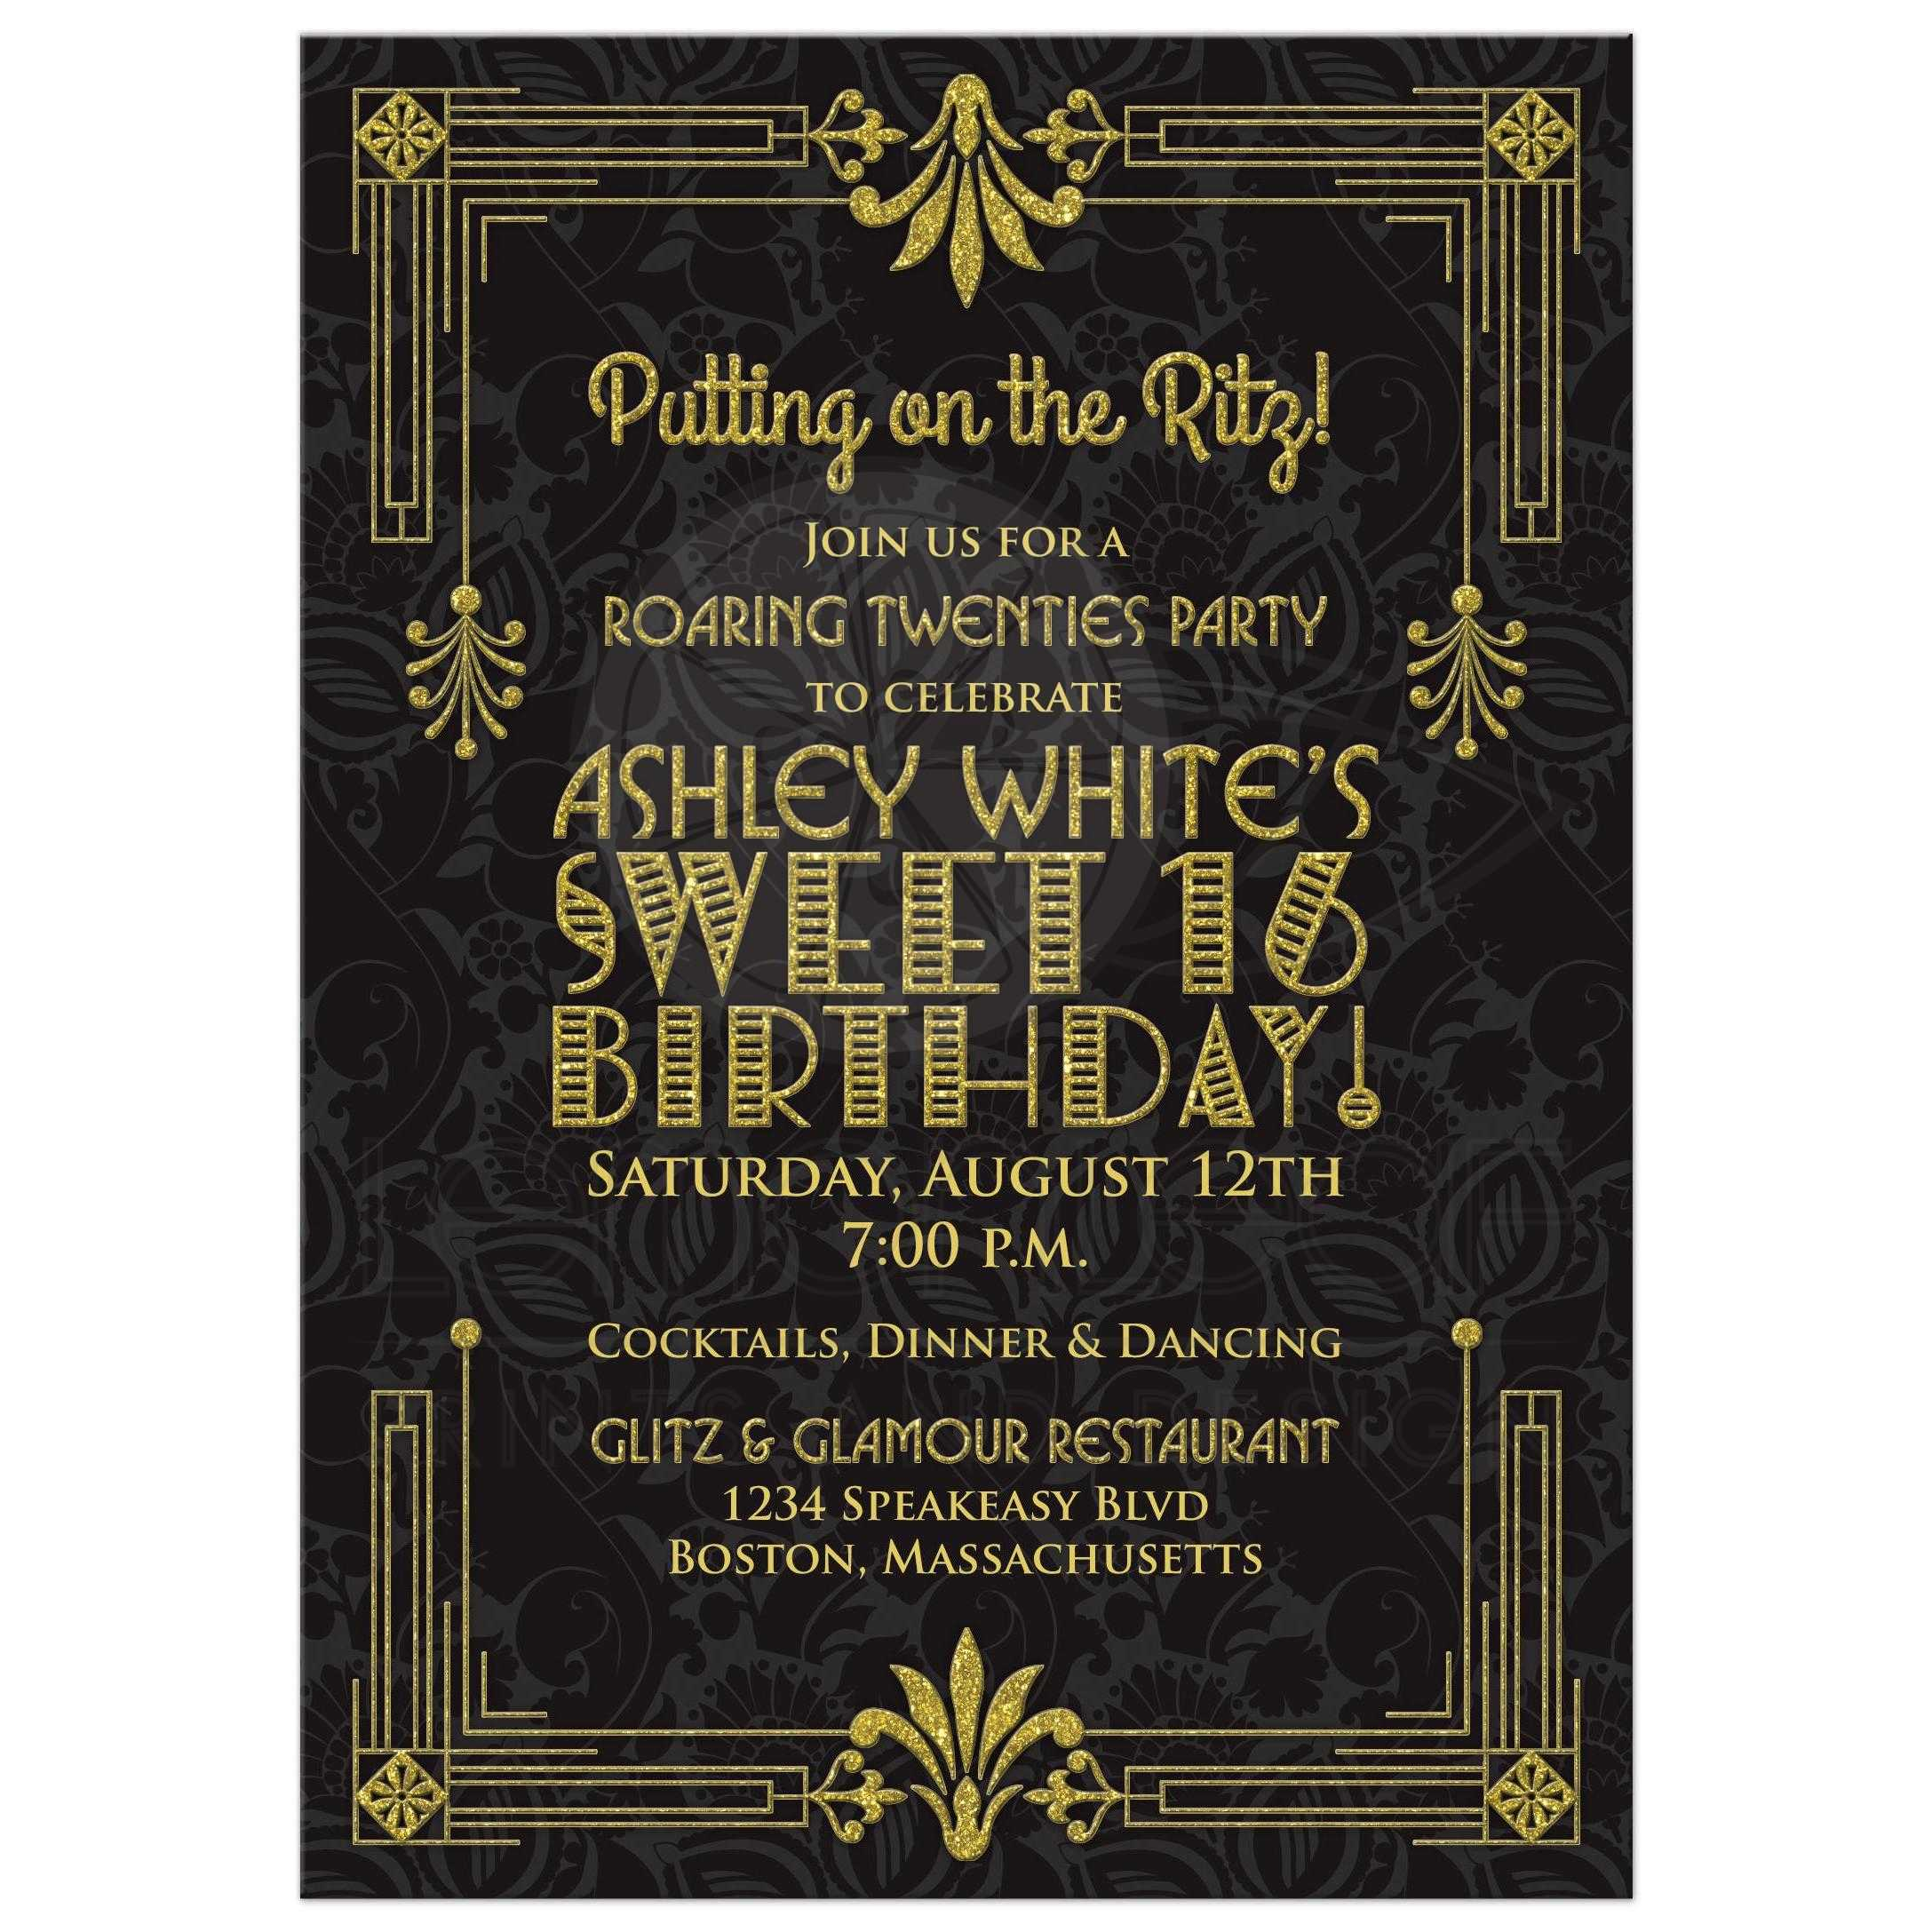 Sweet 16 birthday invitation roaring 20s art deco black gold black and gold roaring 20s roaring twenties art deco style sweet 16 invitation front filmwisefo